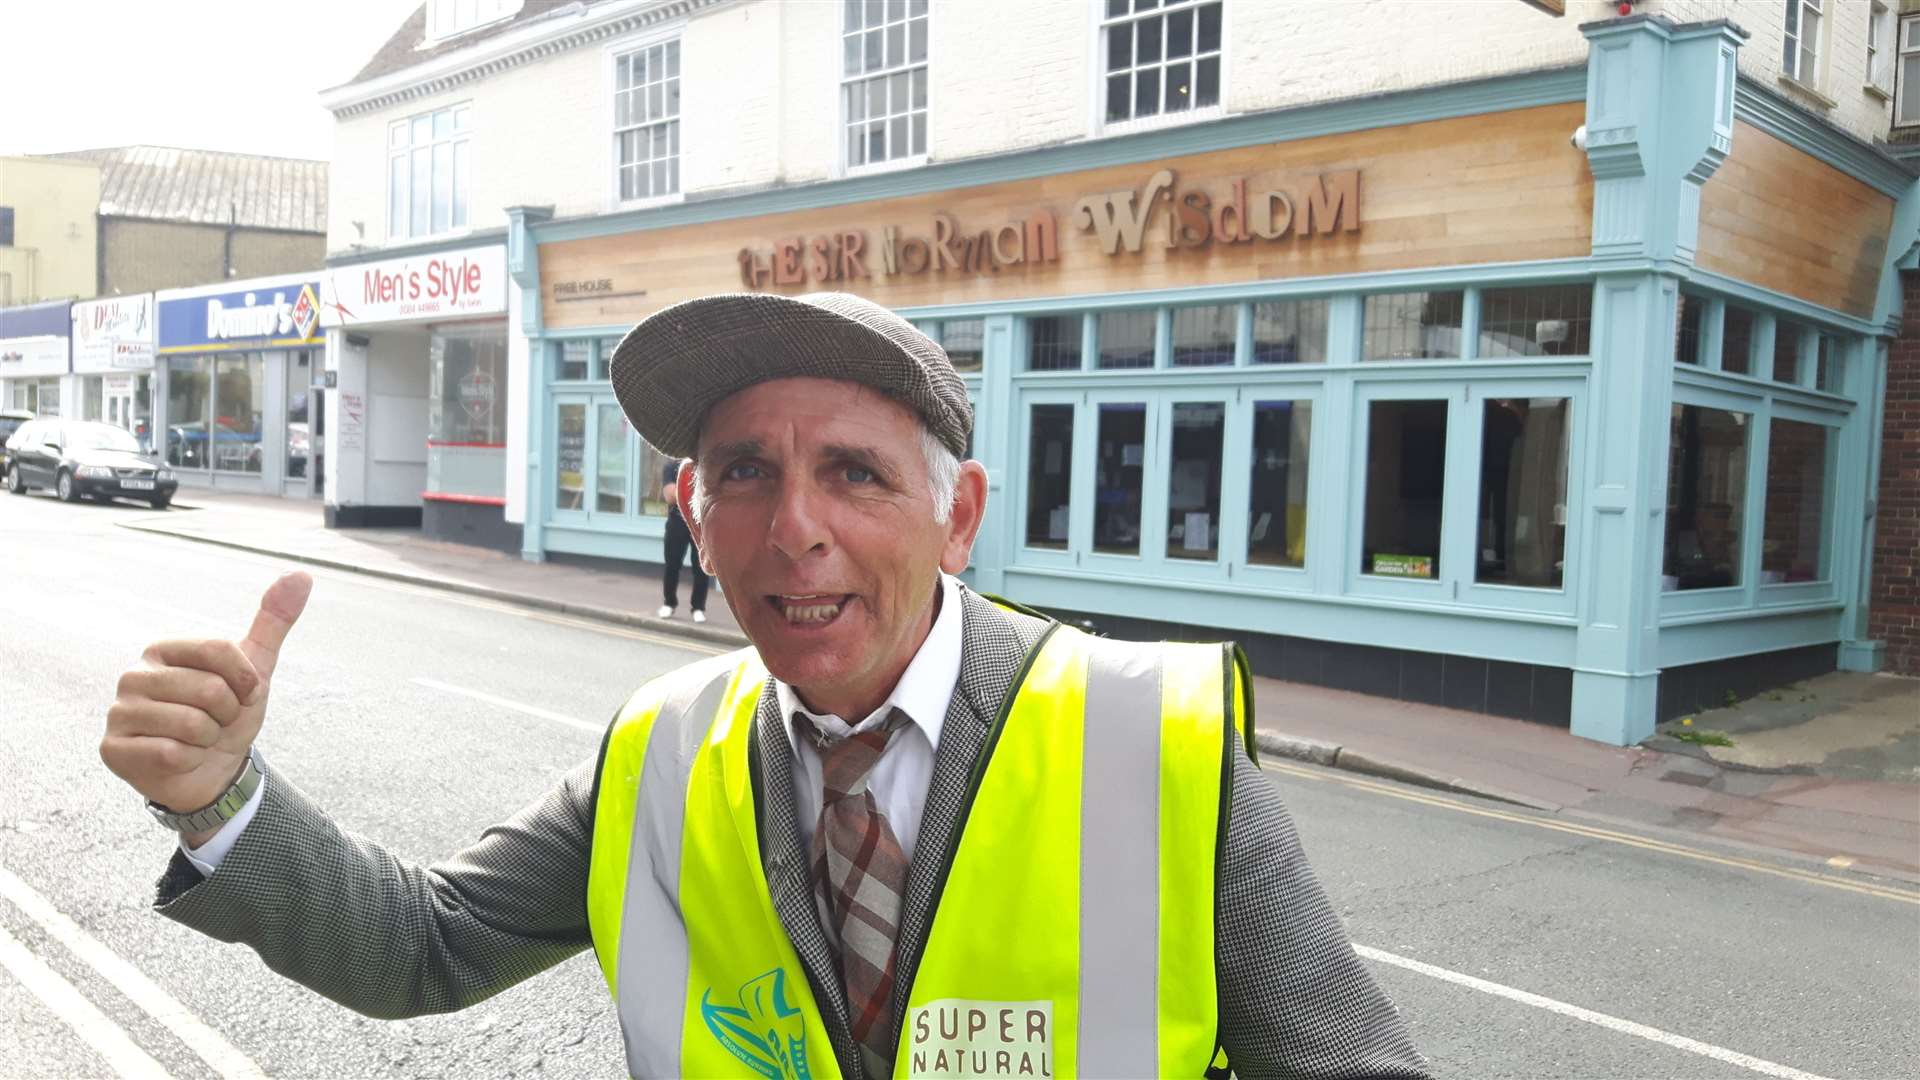 Glenn Ford outside the Sir Norman Wisdom in 2017. Picture: Sam Lennon.